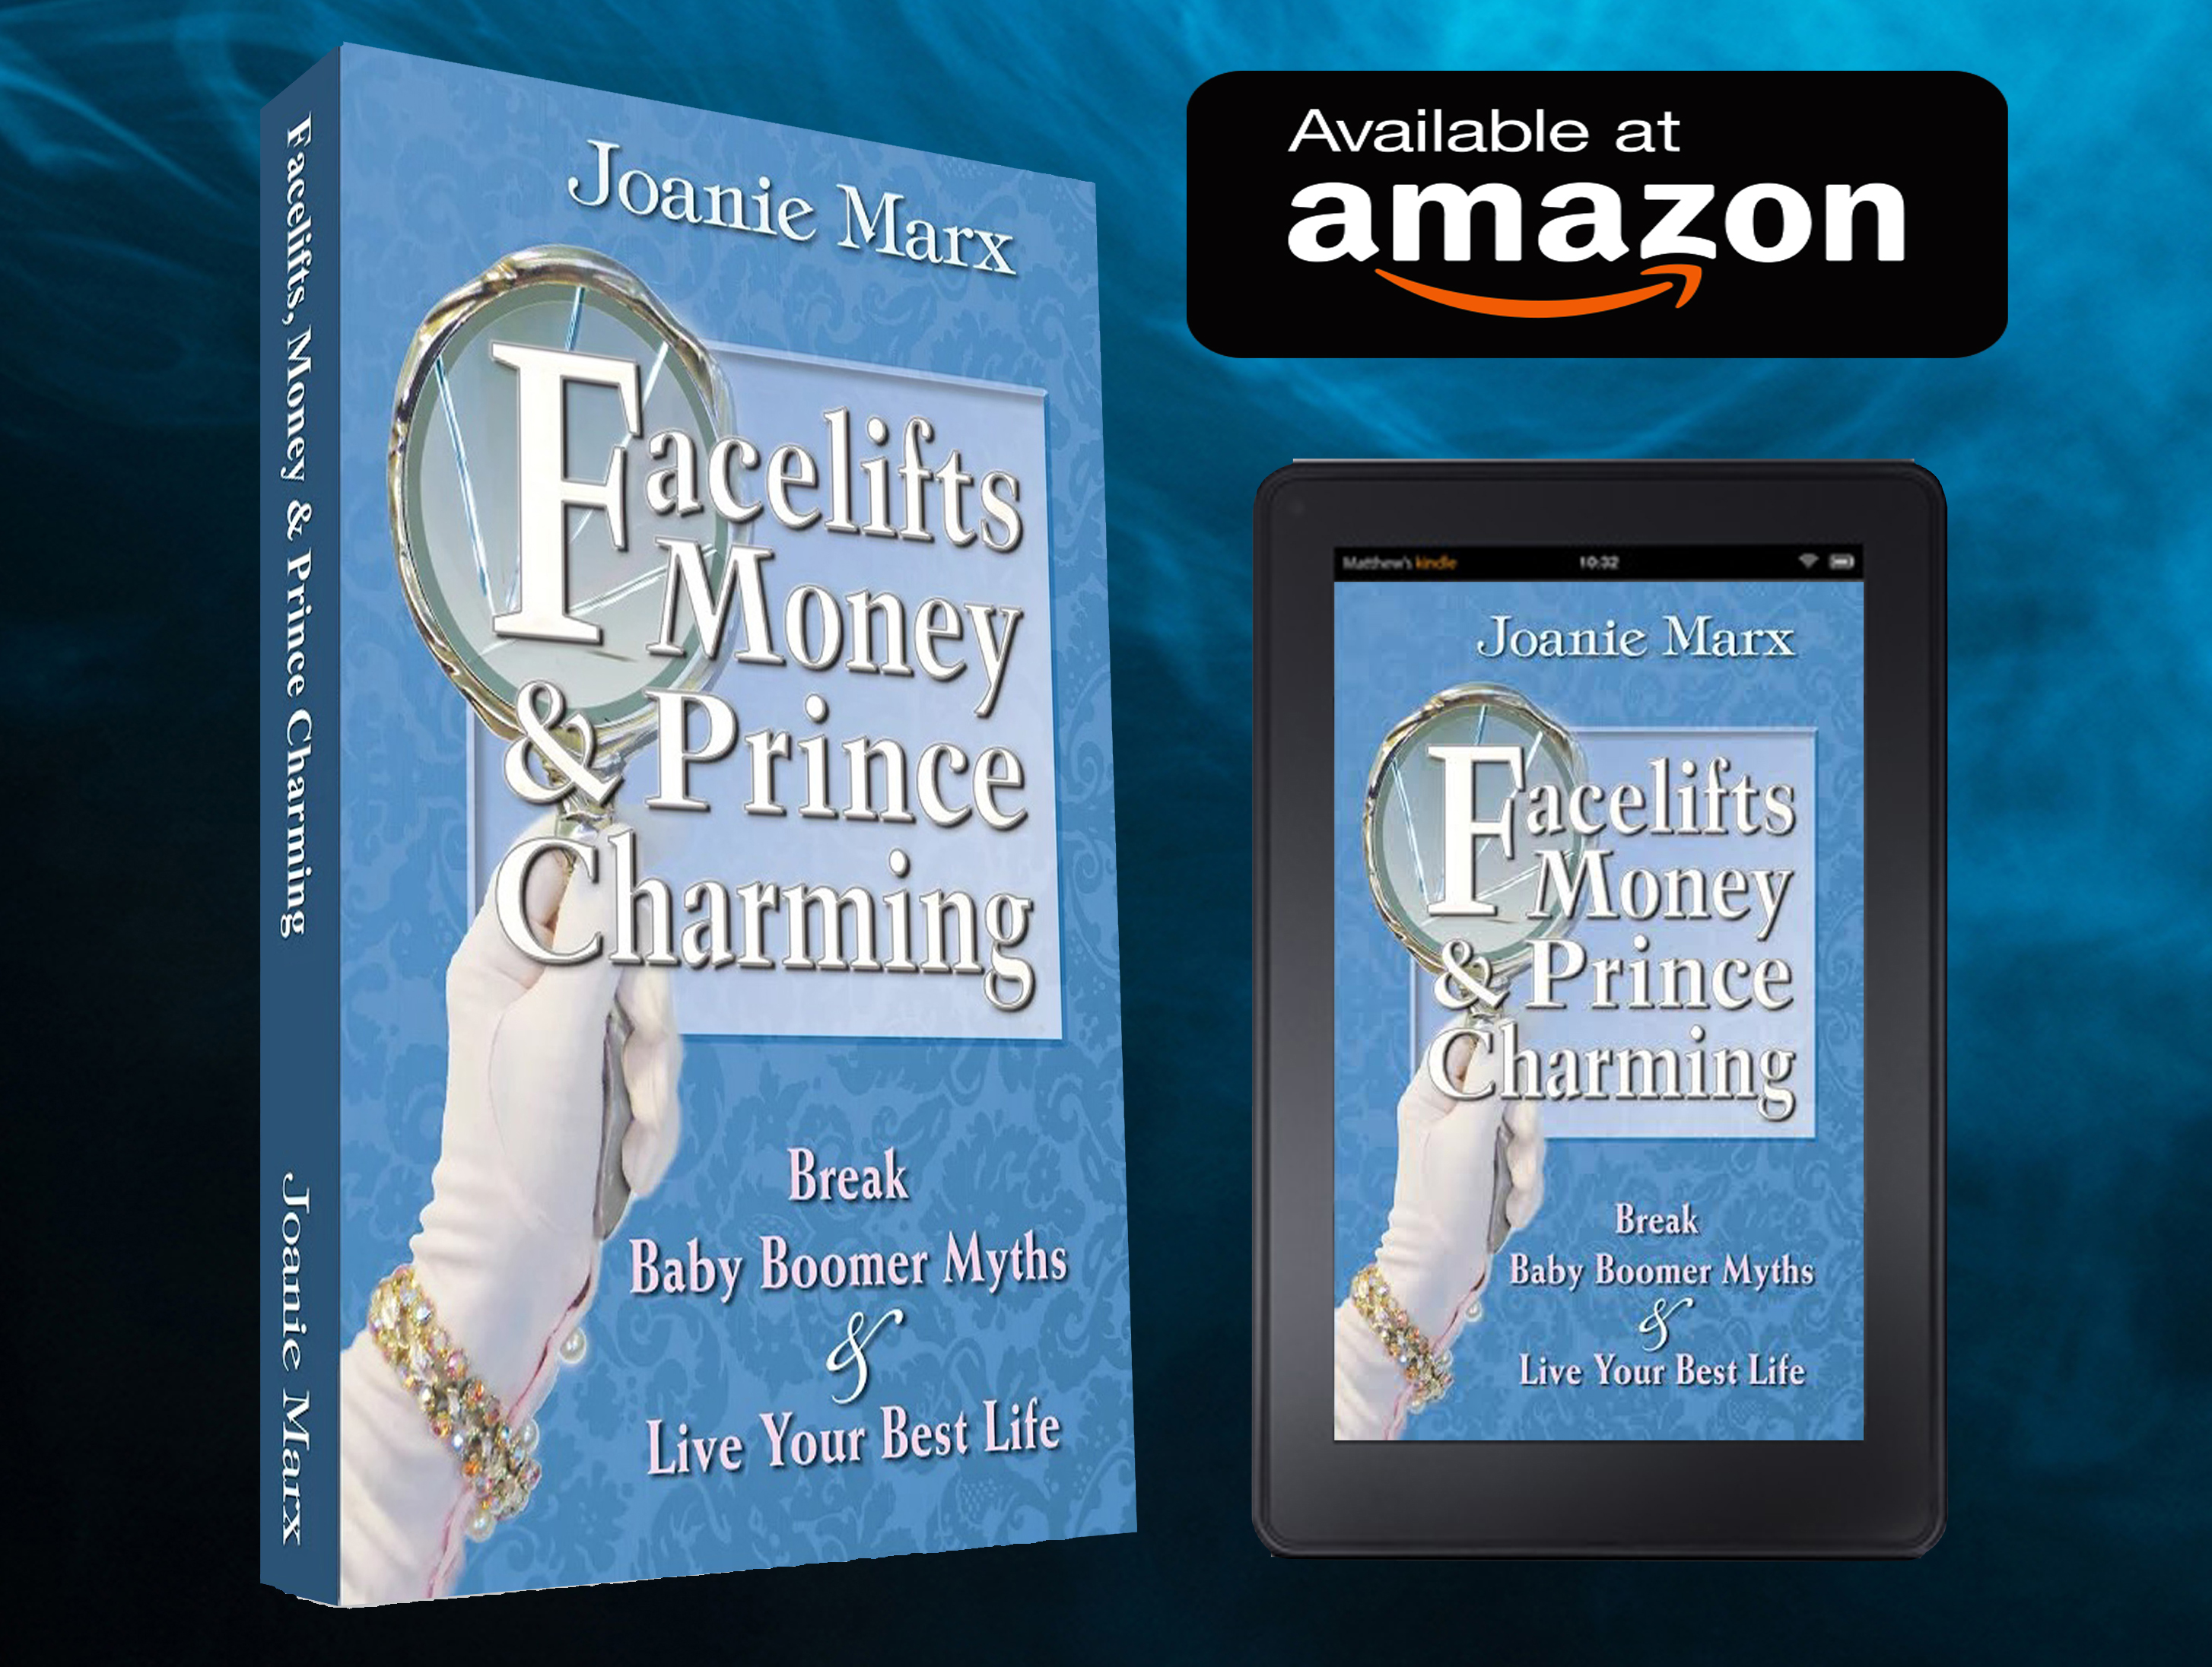 Joanie Marx Book-ad-copy Let Go of Baggage Book Excerpts Invisible Customer With All the Money™ Refocus & Renew Your Life™ Uncategorized